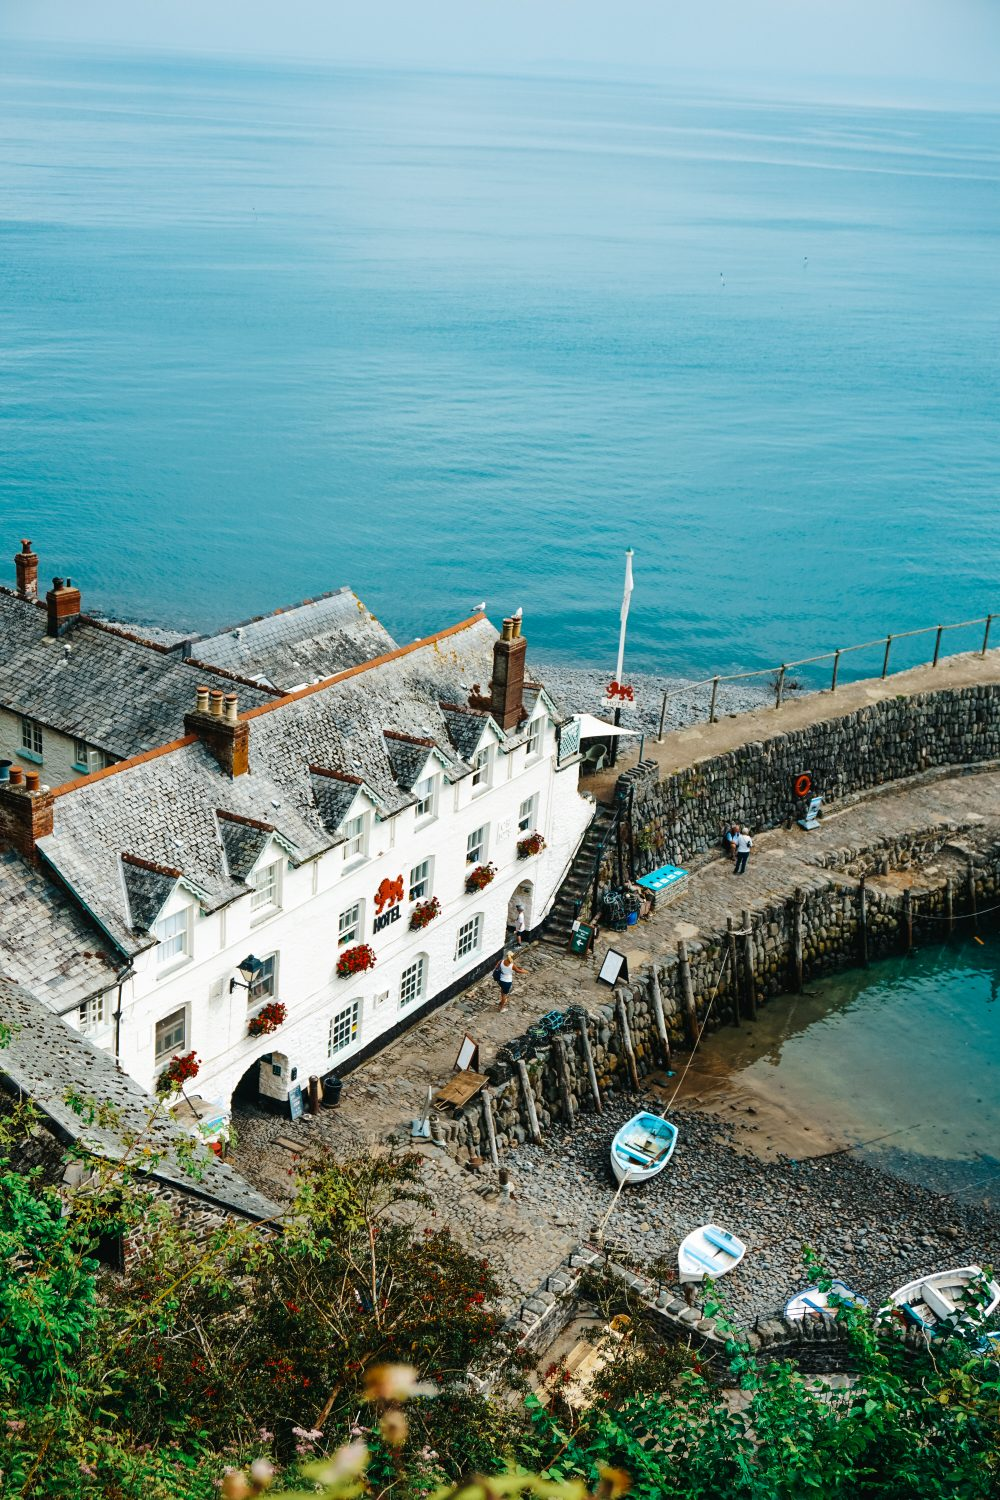 Blue waters surround the harbour around red lion clovelly